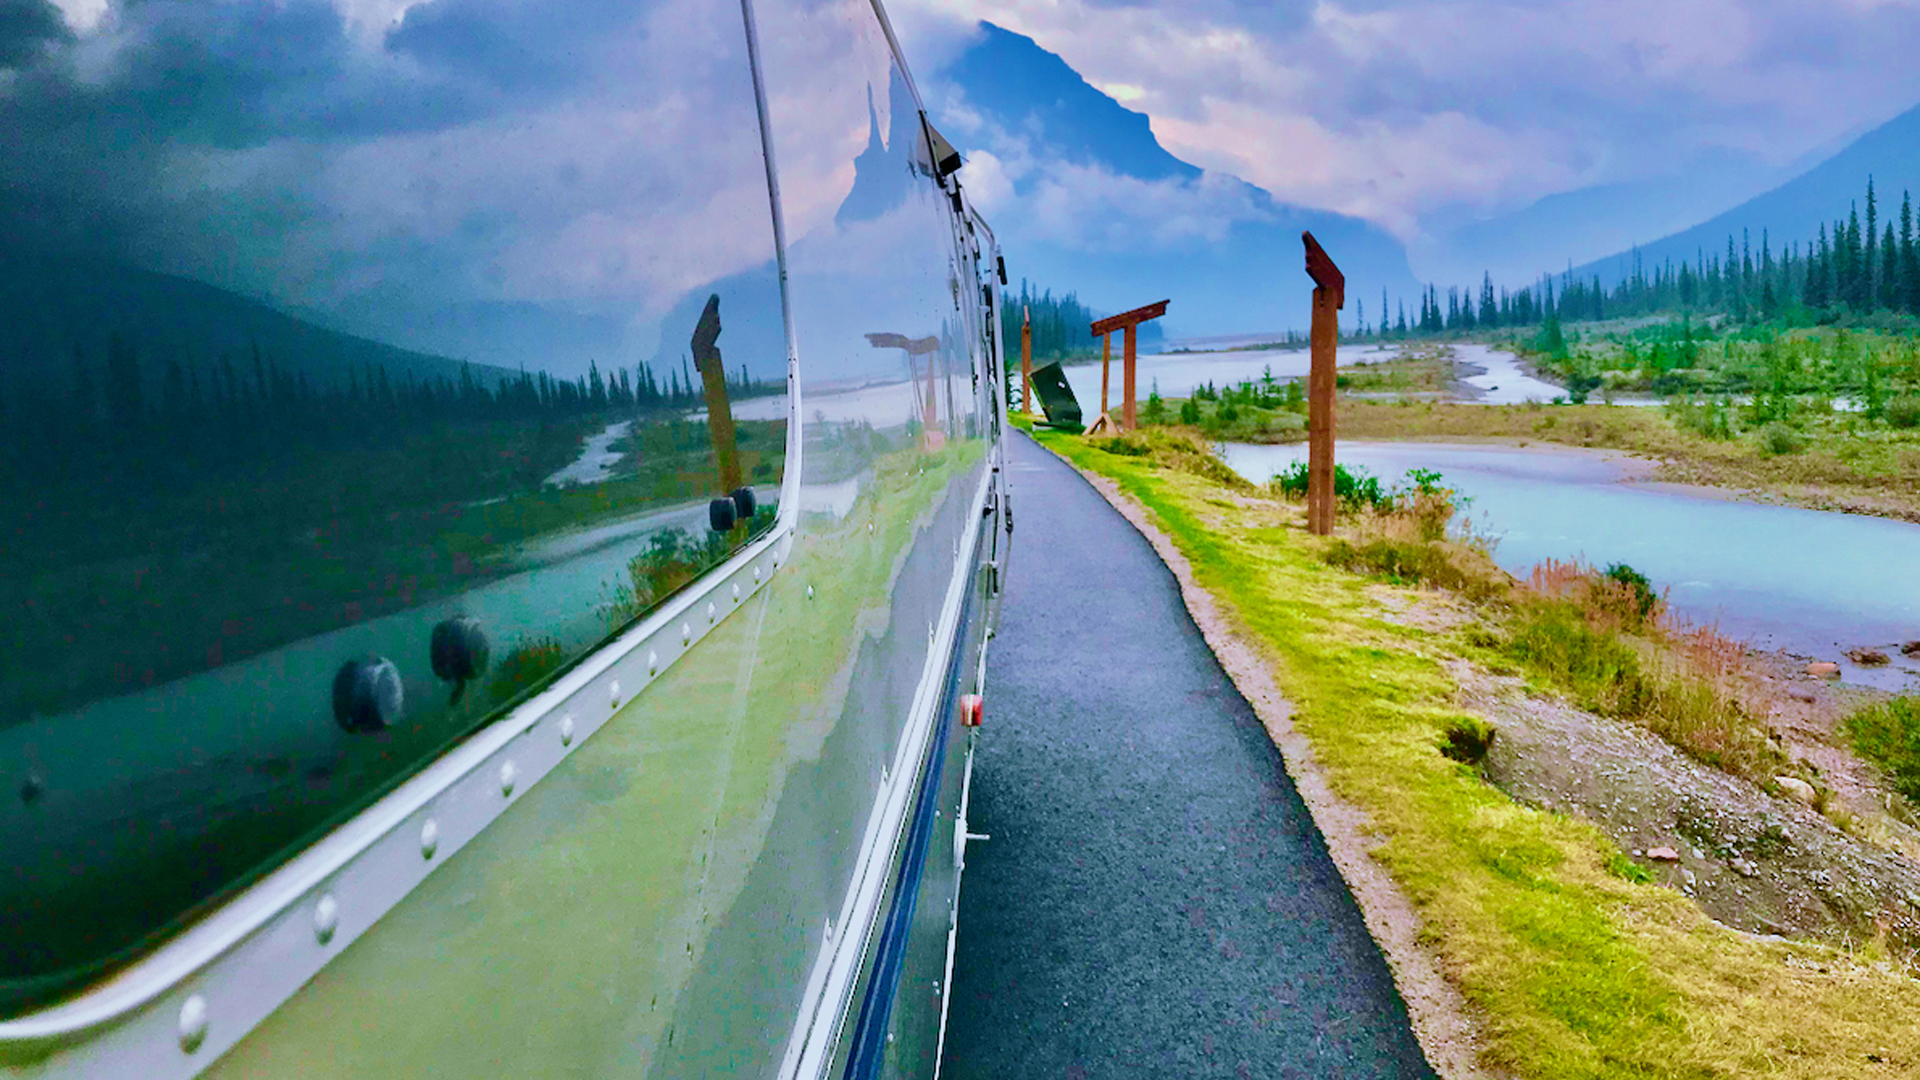 Airstream in the mountains